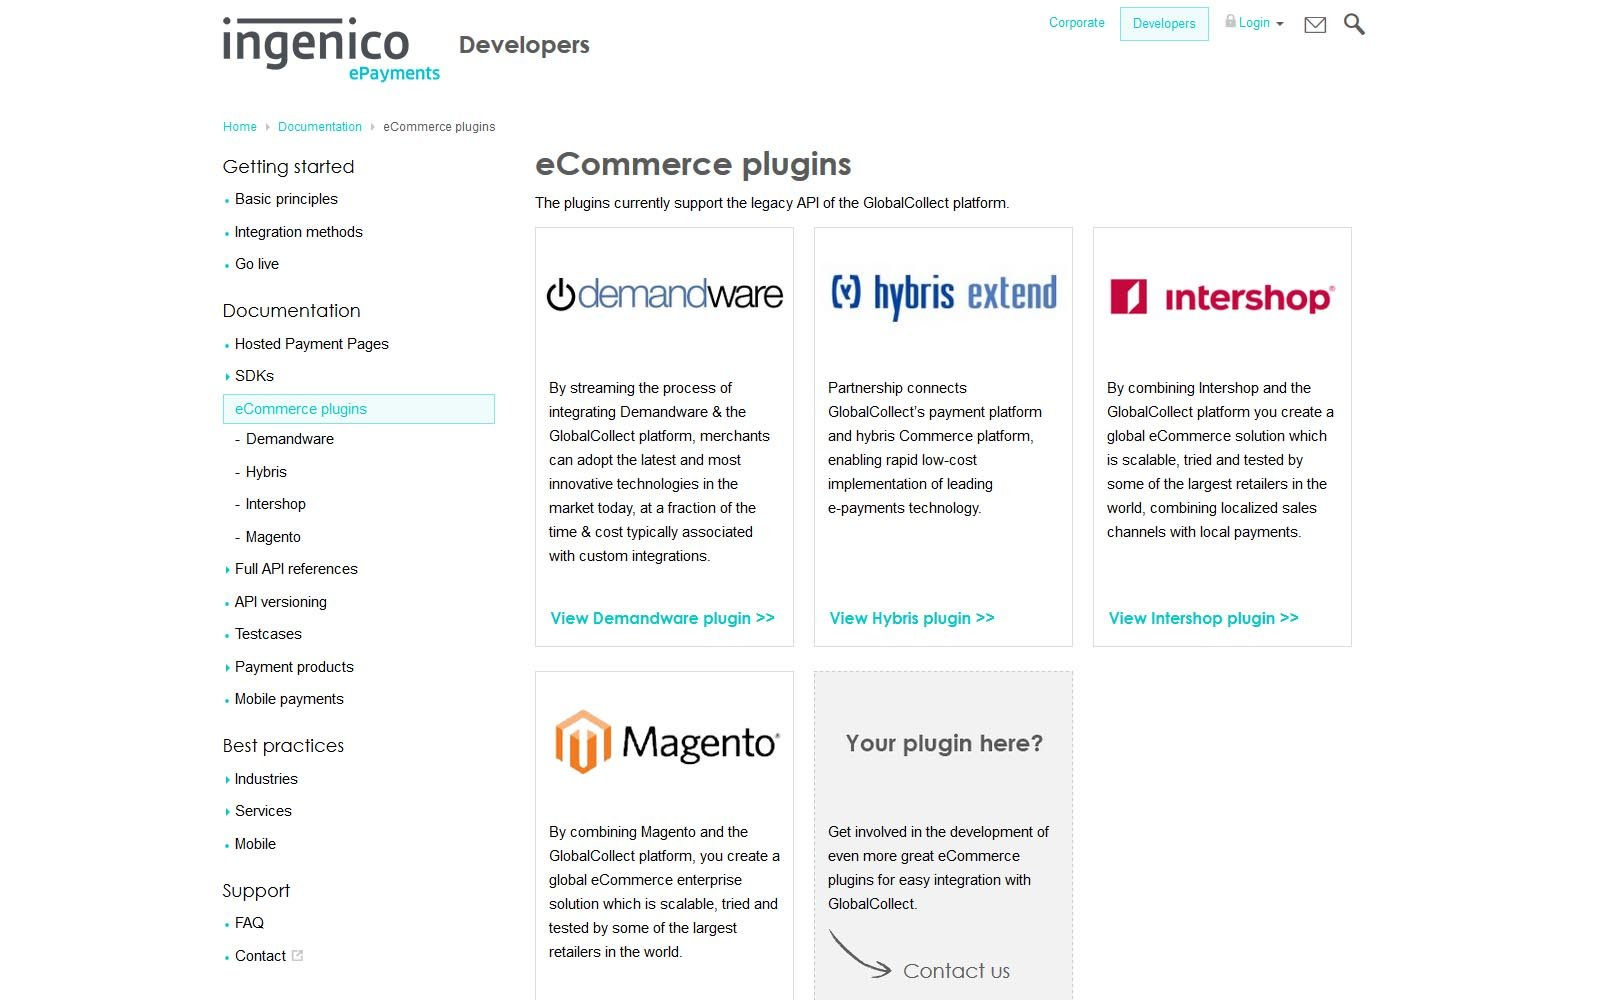 Ingenico ePayments screenshot 2